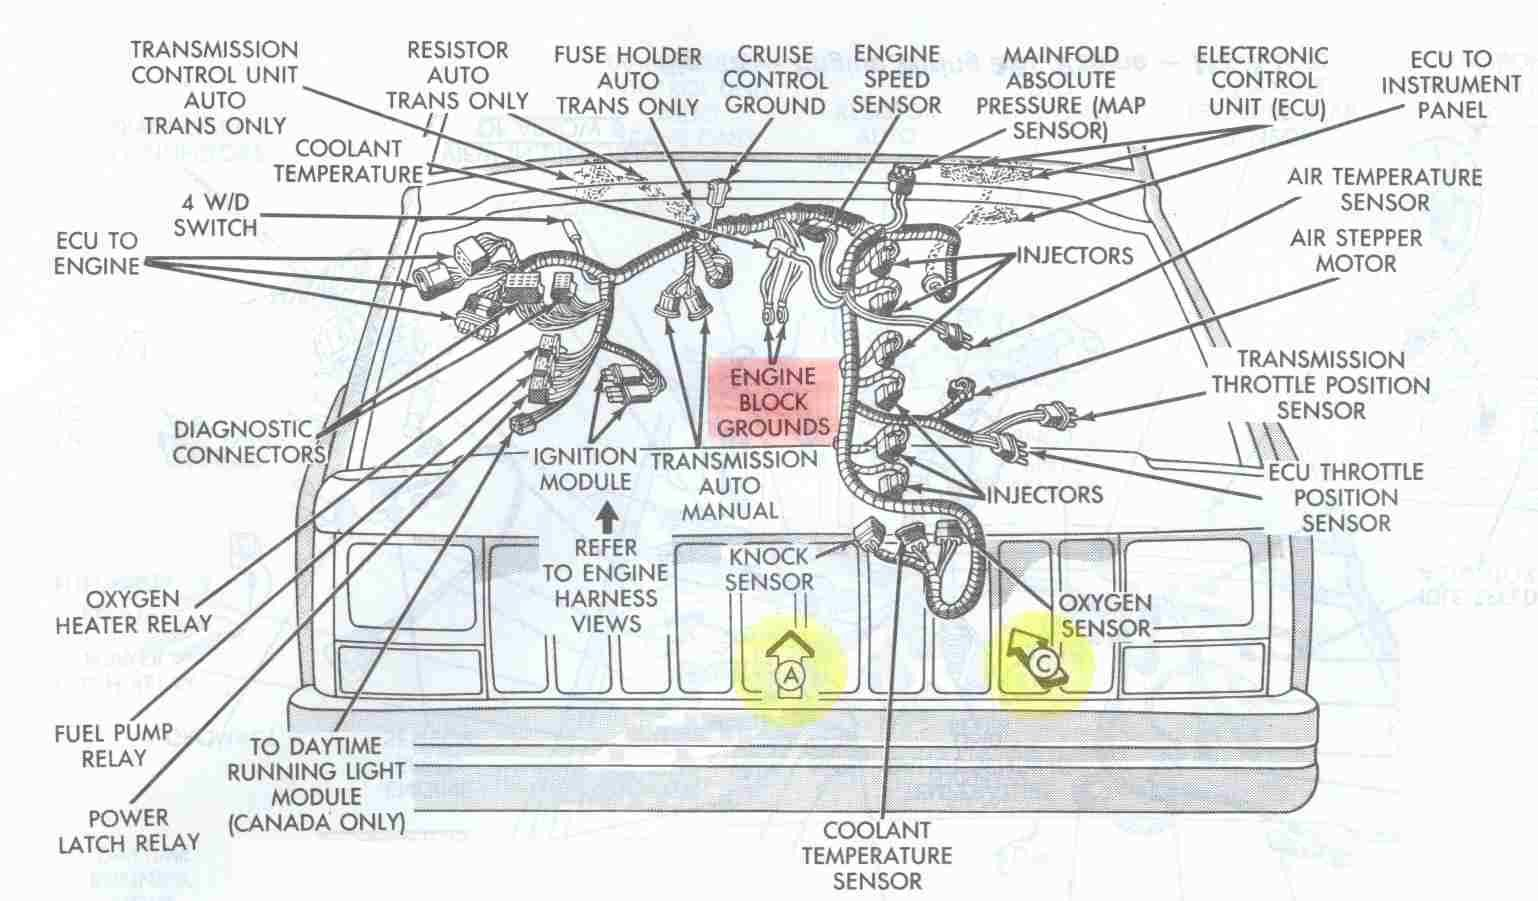 hight resolution of 2004 jeep grand cherokee 4 0l engine coolant diagram wiring 2004 jeep grand cherokee 4 0l engine coolant diagram